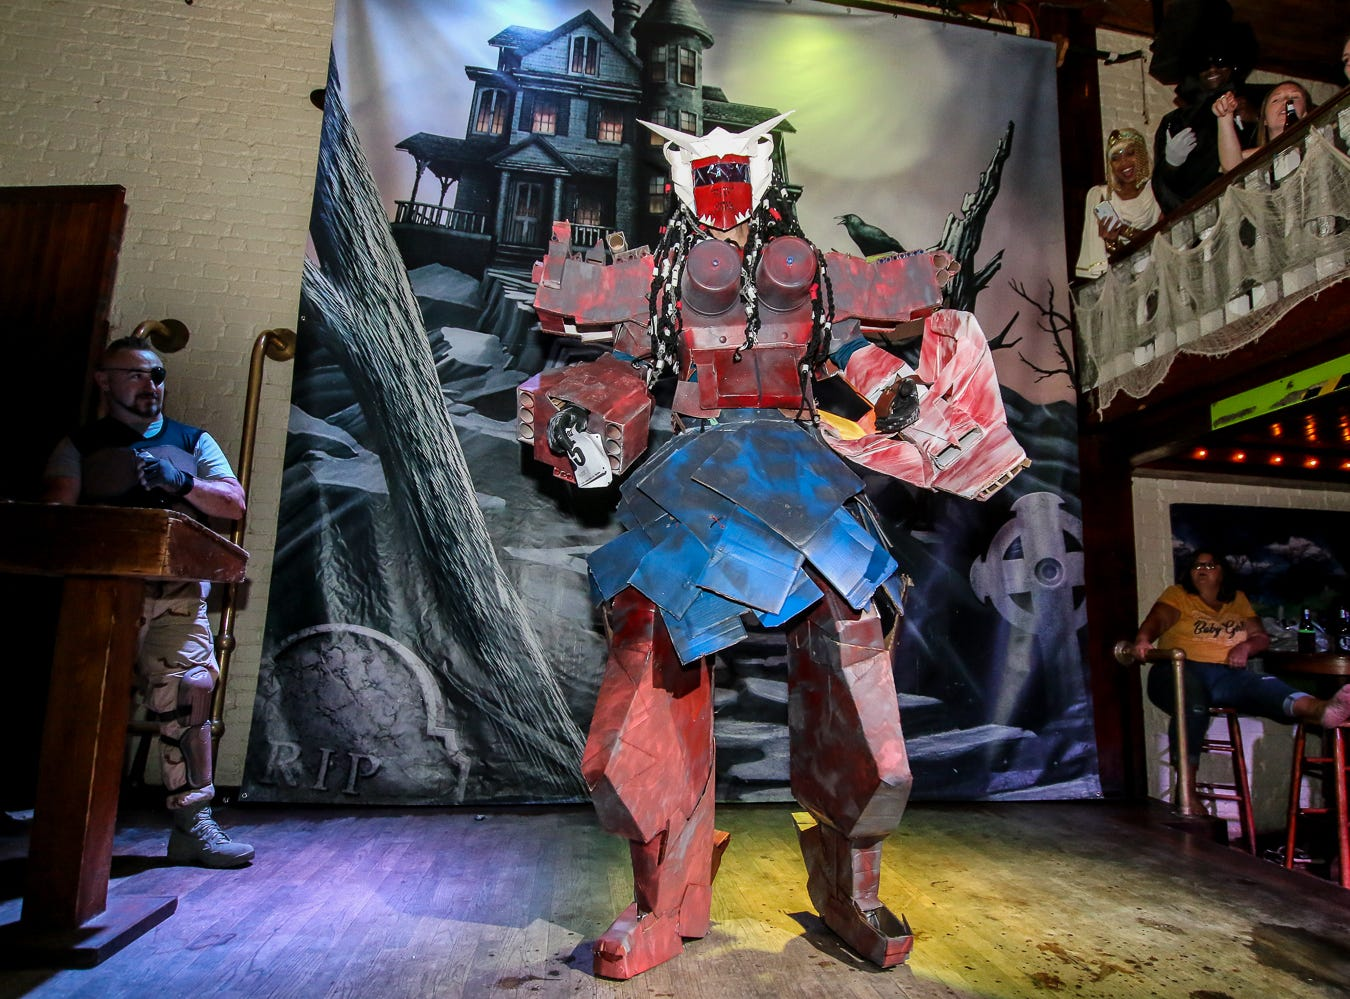 """Transformer"" won 2nd place in the $1,000 grand prize Halloween costume contest, which featured over 100 entrants, at Seville Quarter on Wednesday, October 31, 2018."